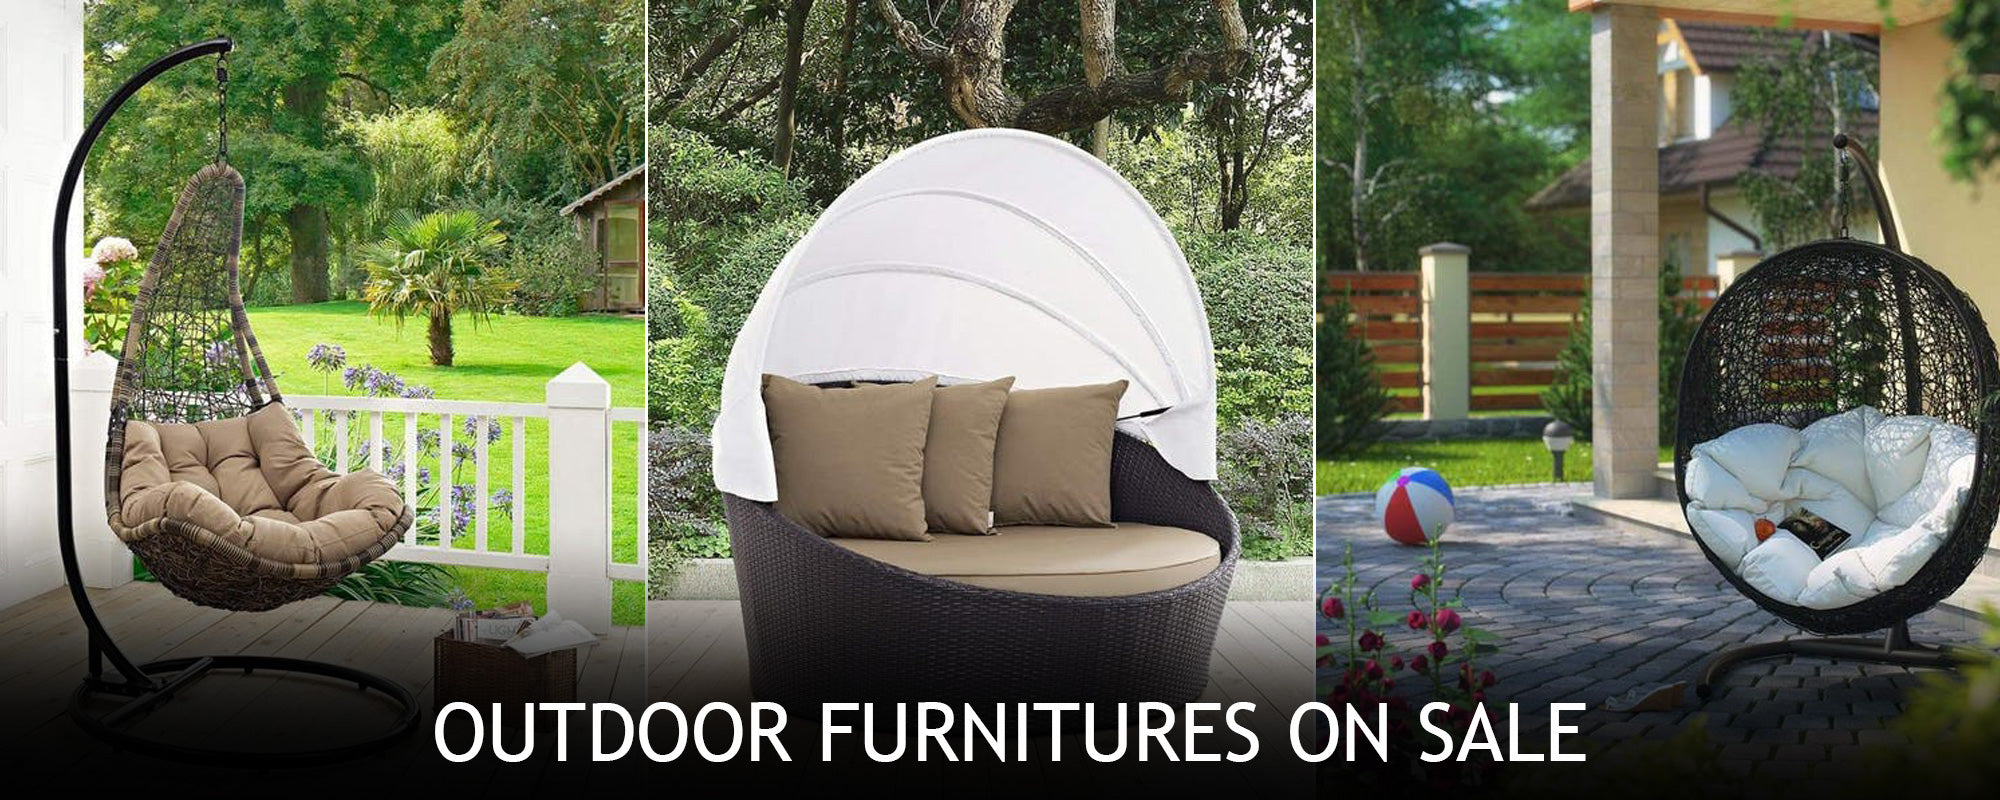 Outdoor Furniture banner